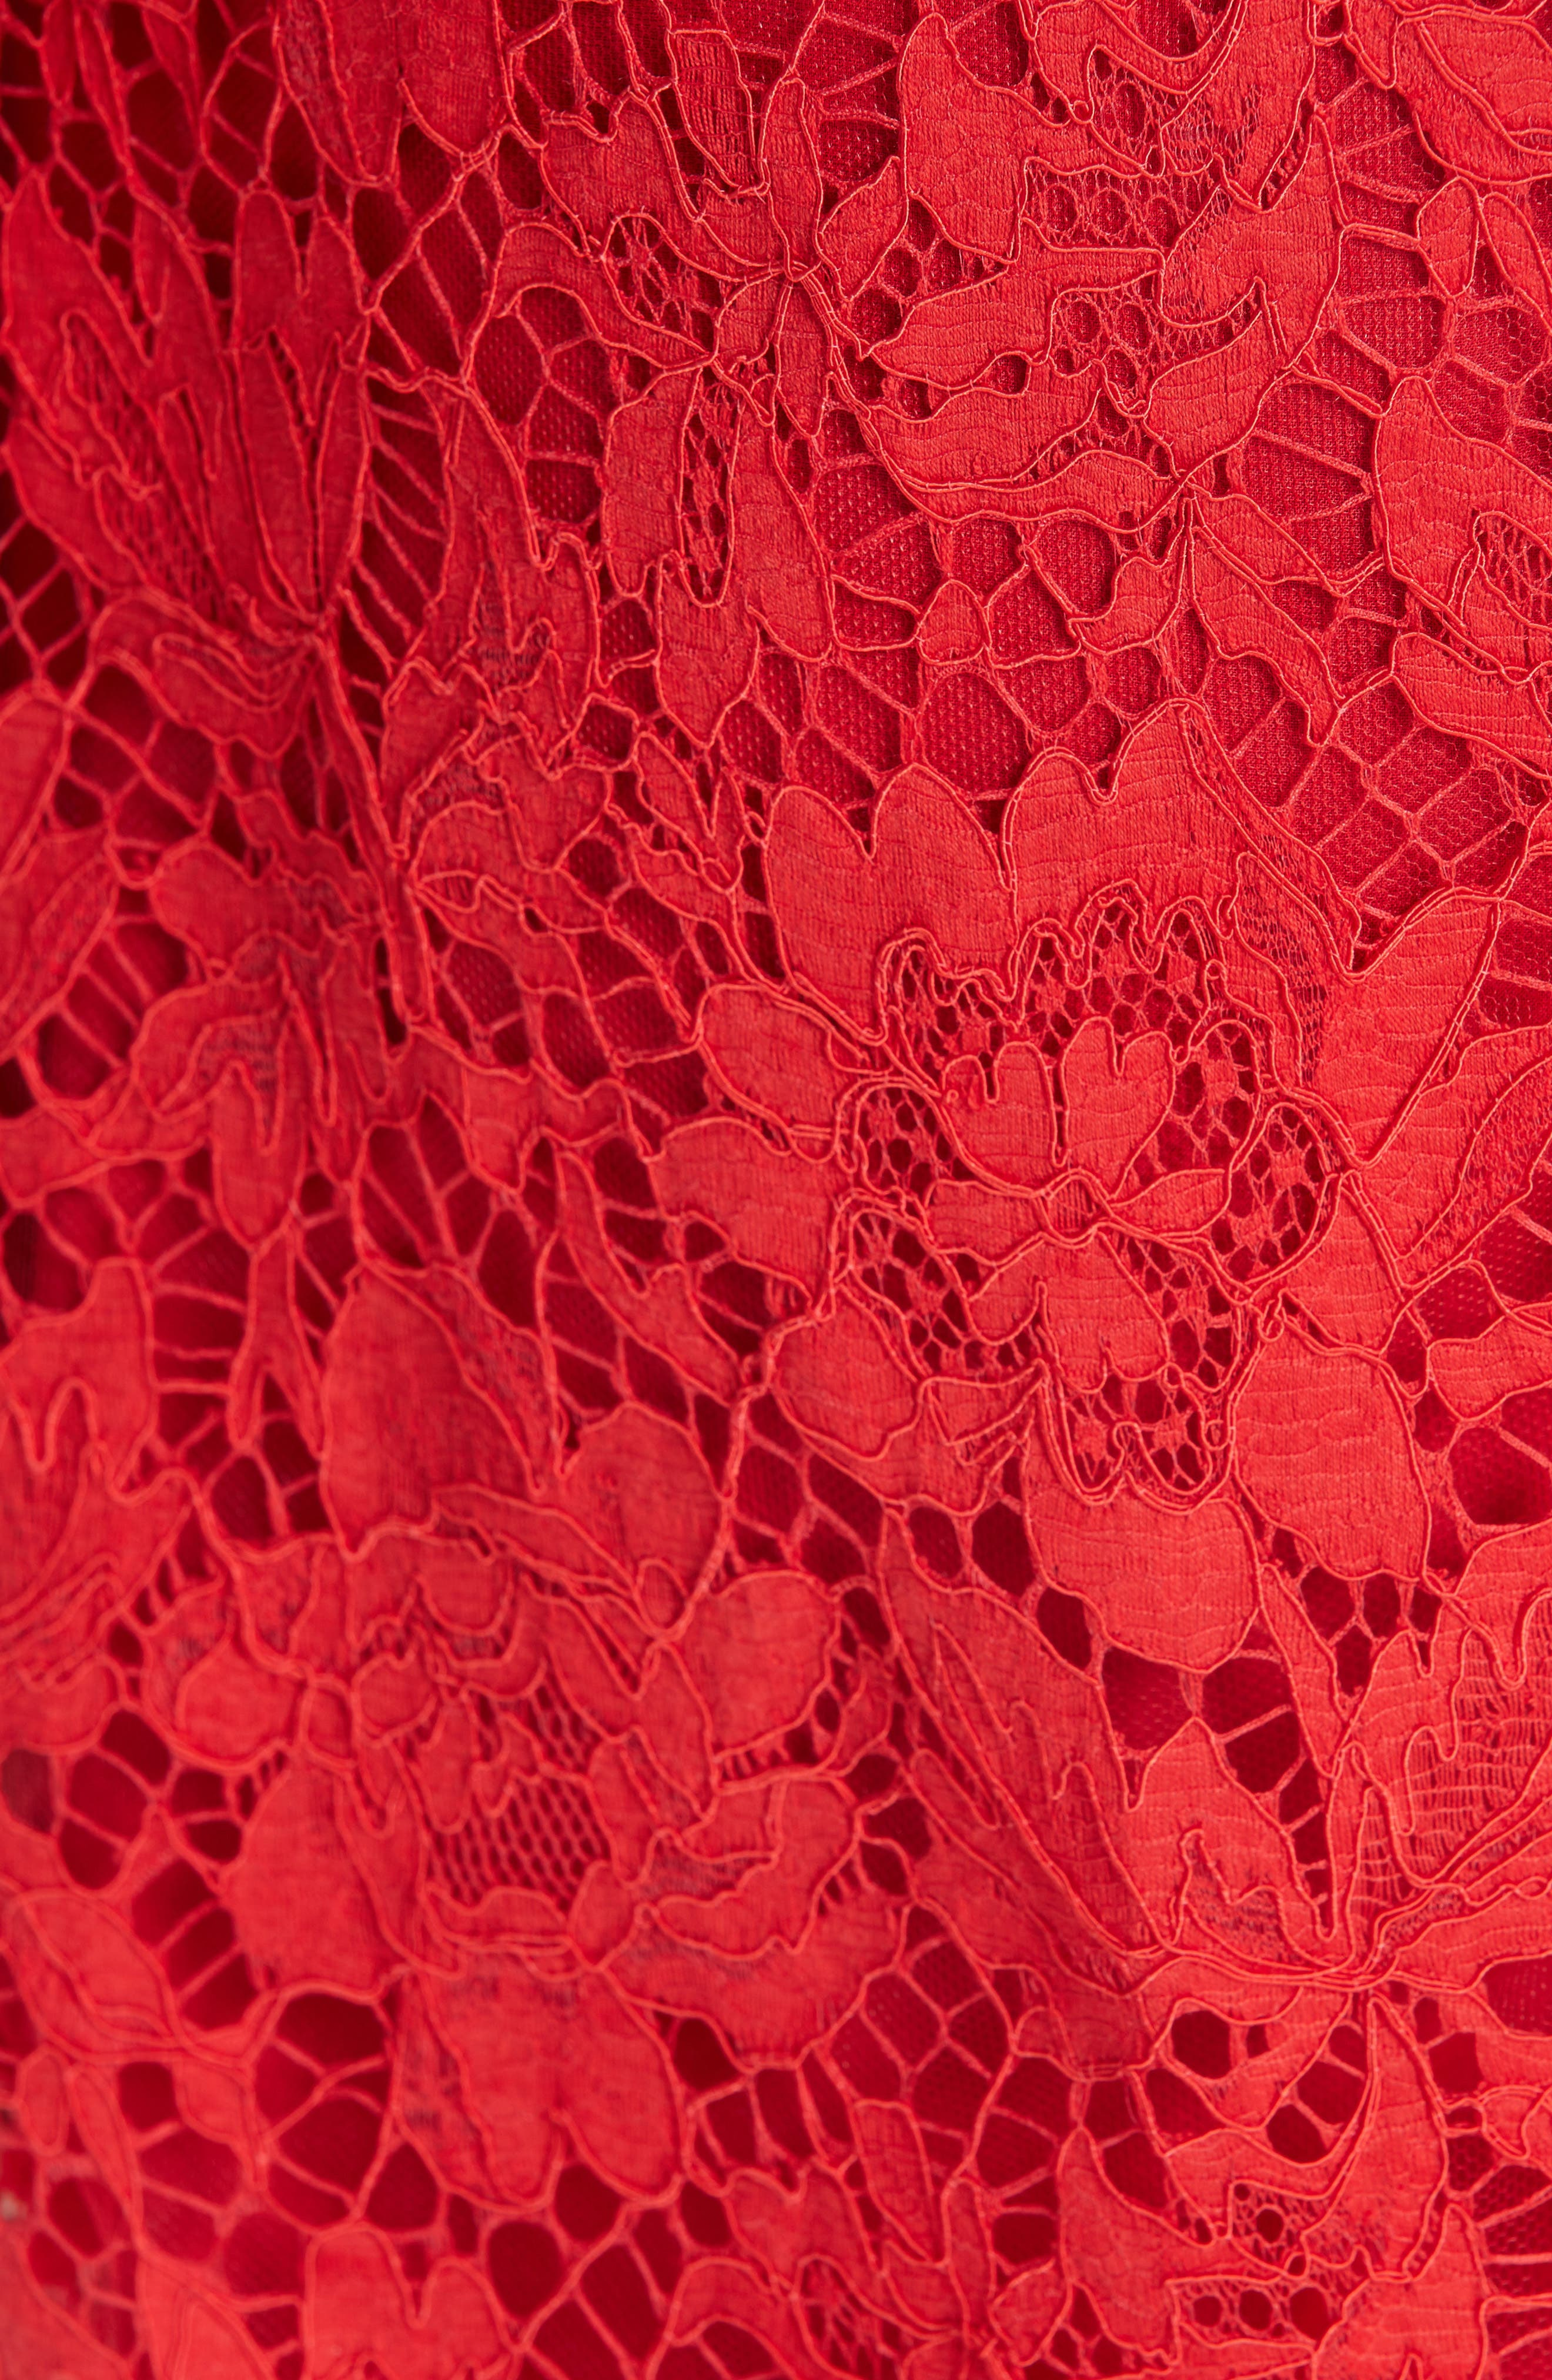 Bow Detail Lace Dress,                             Alternate thumbnail 5, color,                             RED